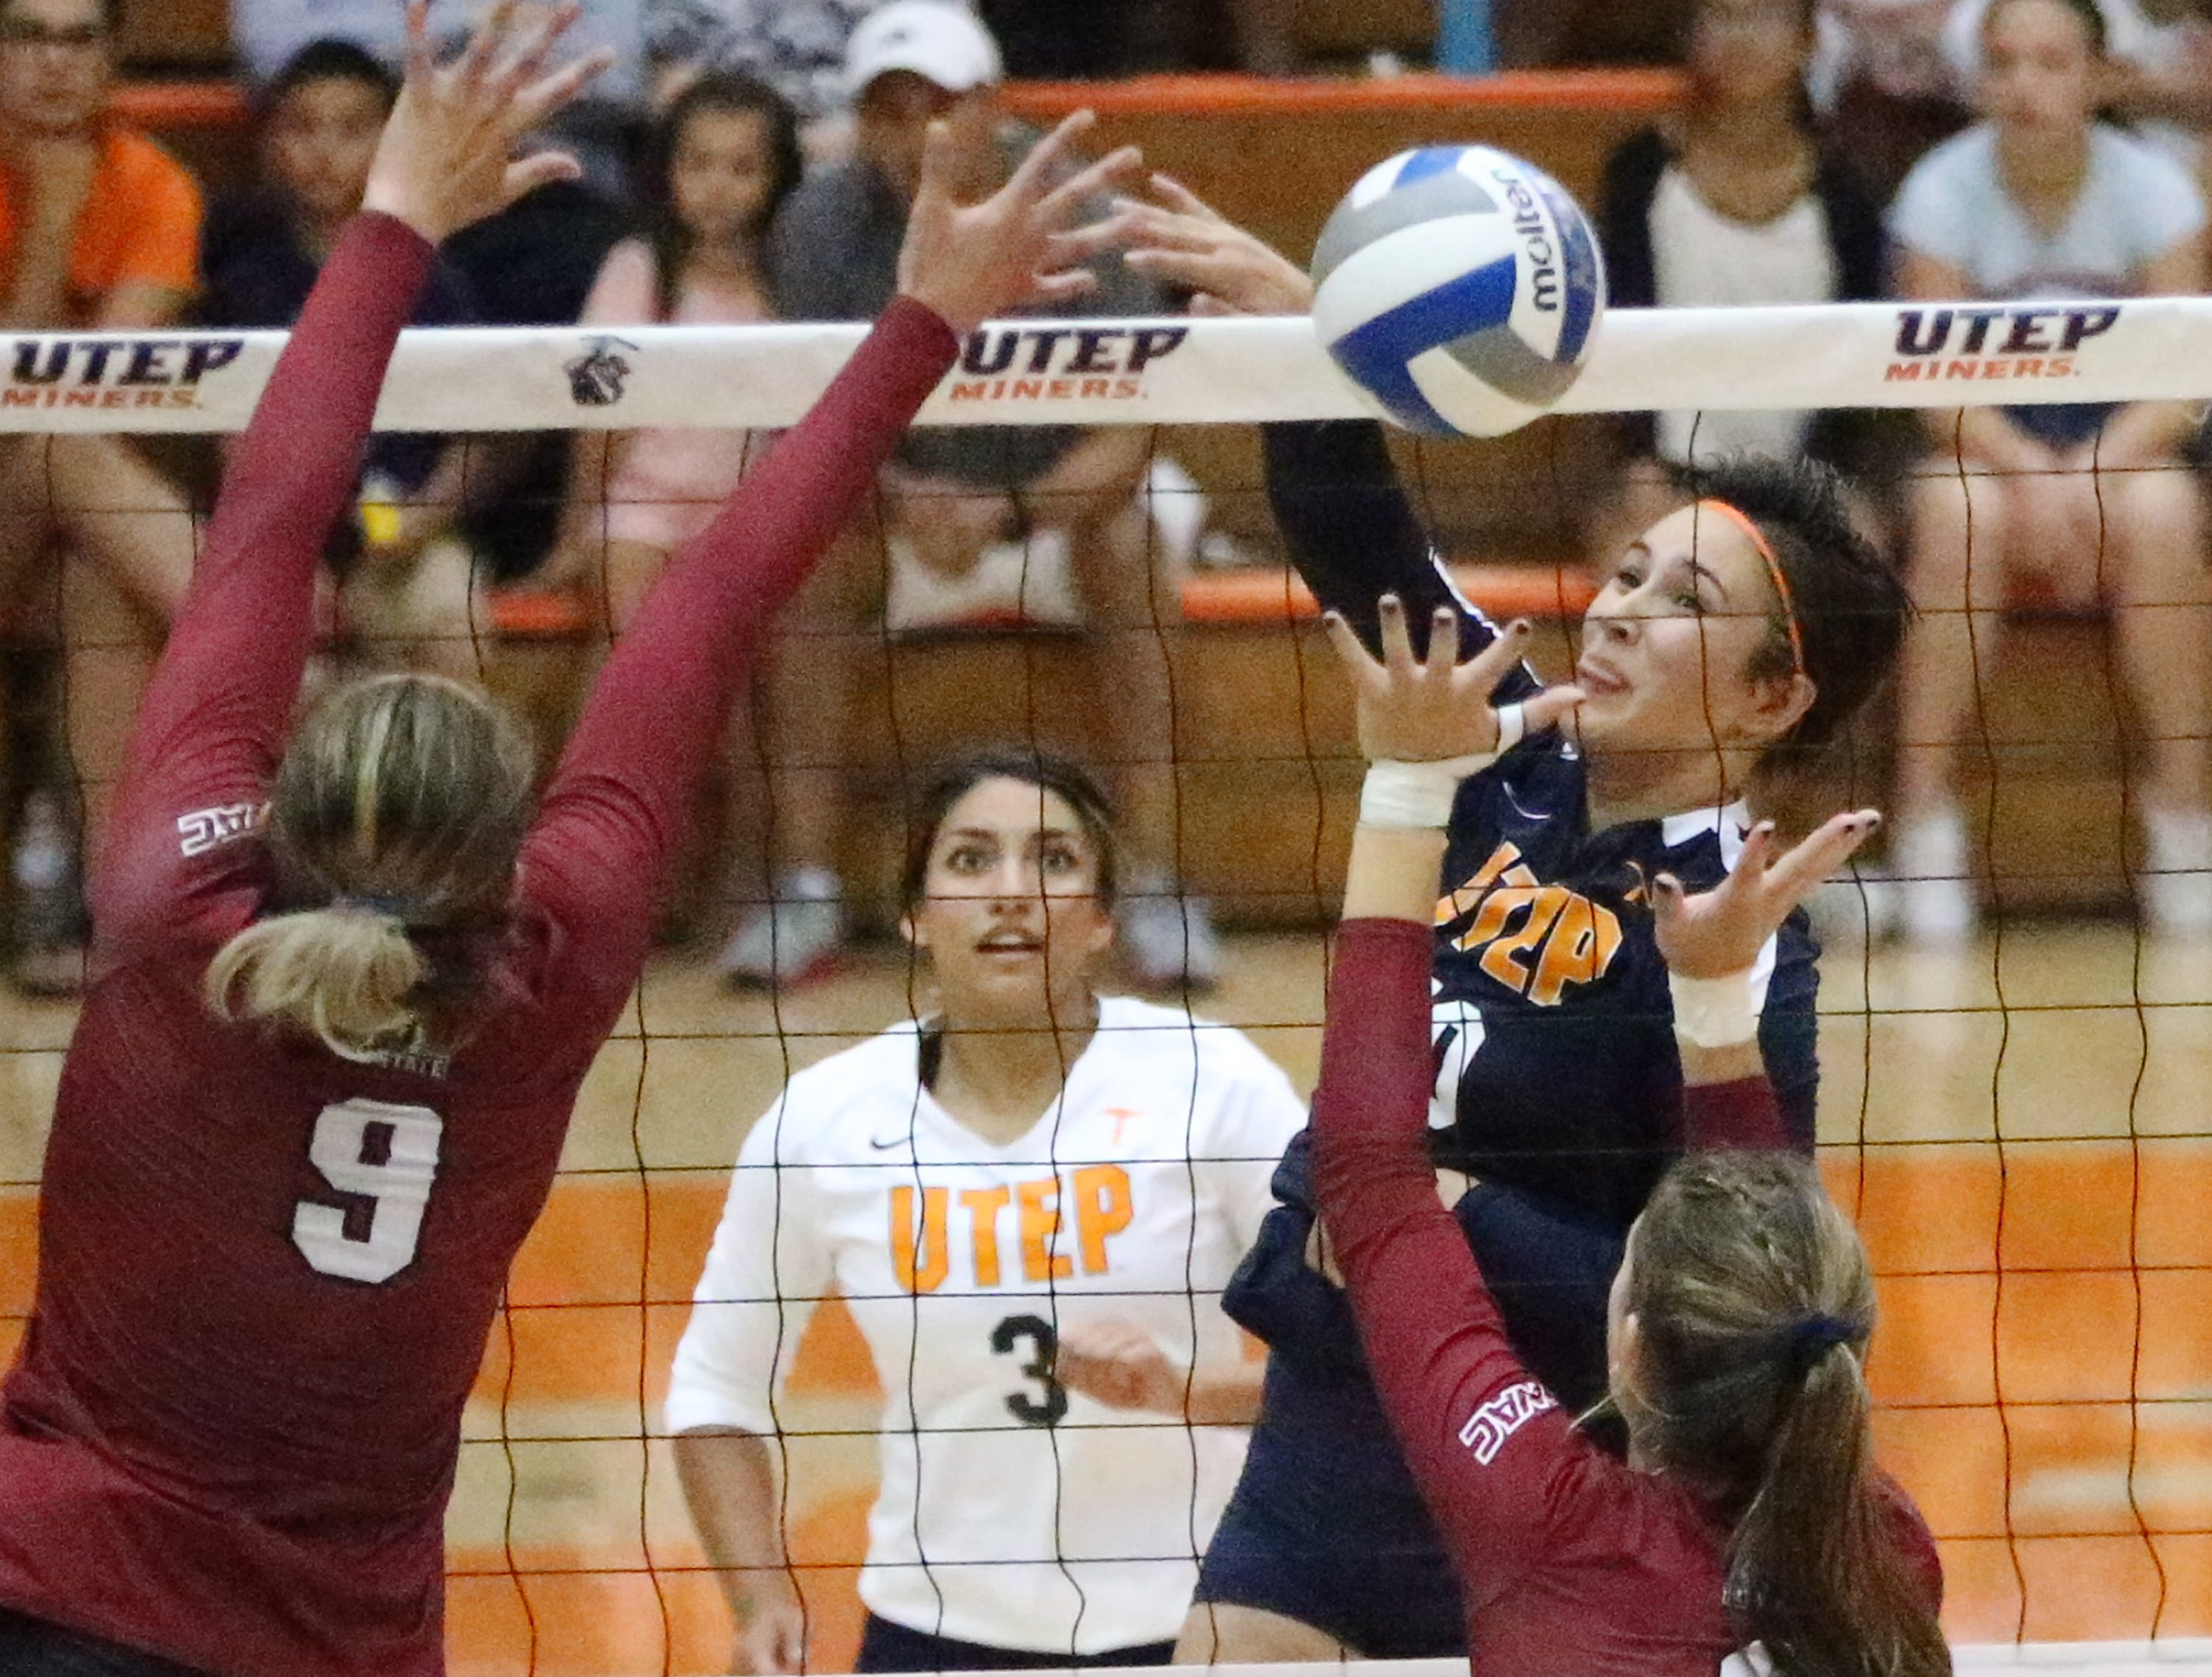 UTEP's Briana Arellano fires past Julianna Salanoa, 9, and Ashley Anselmo of NMSU Sunday in Memorial Gym. The Miners lost to the Aggies in three sets.